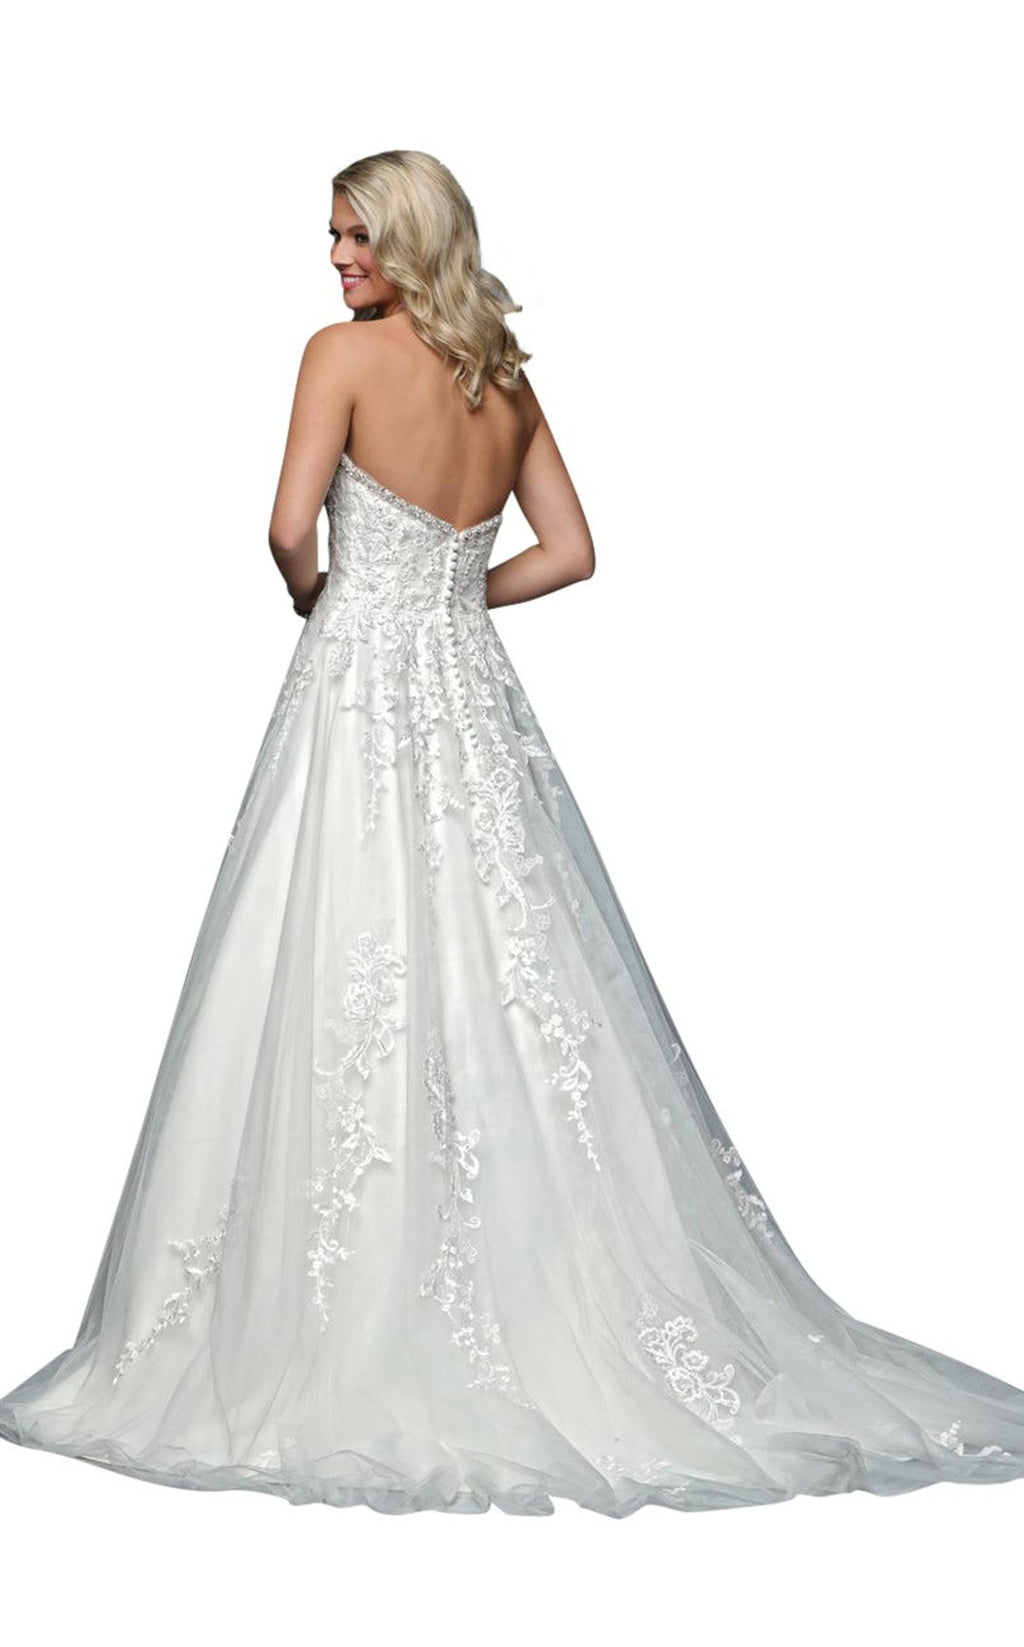 Jadore Bridal 77002 White